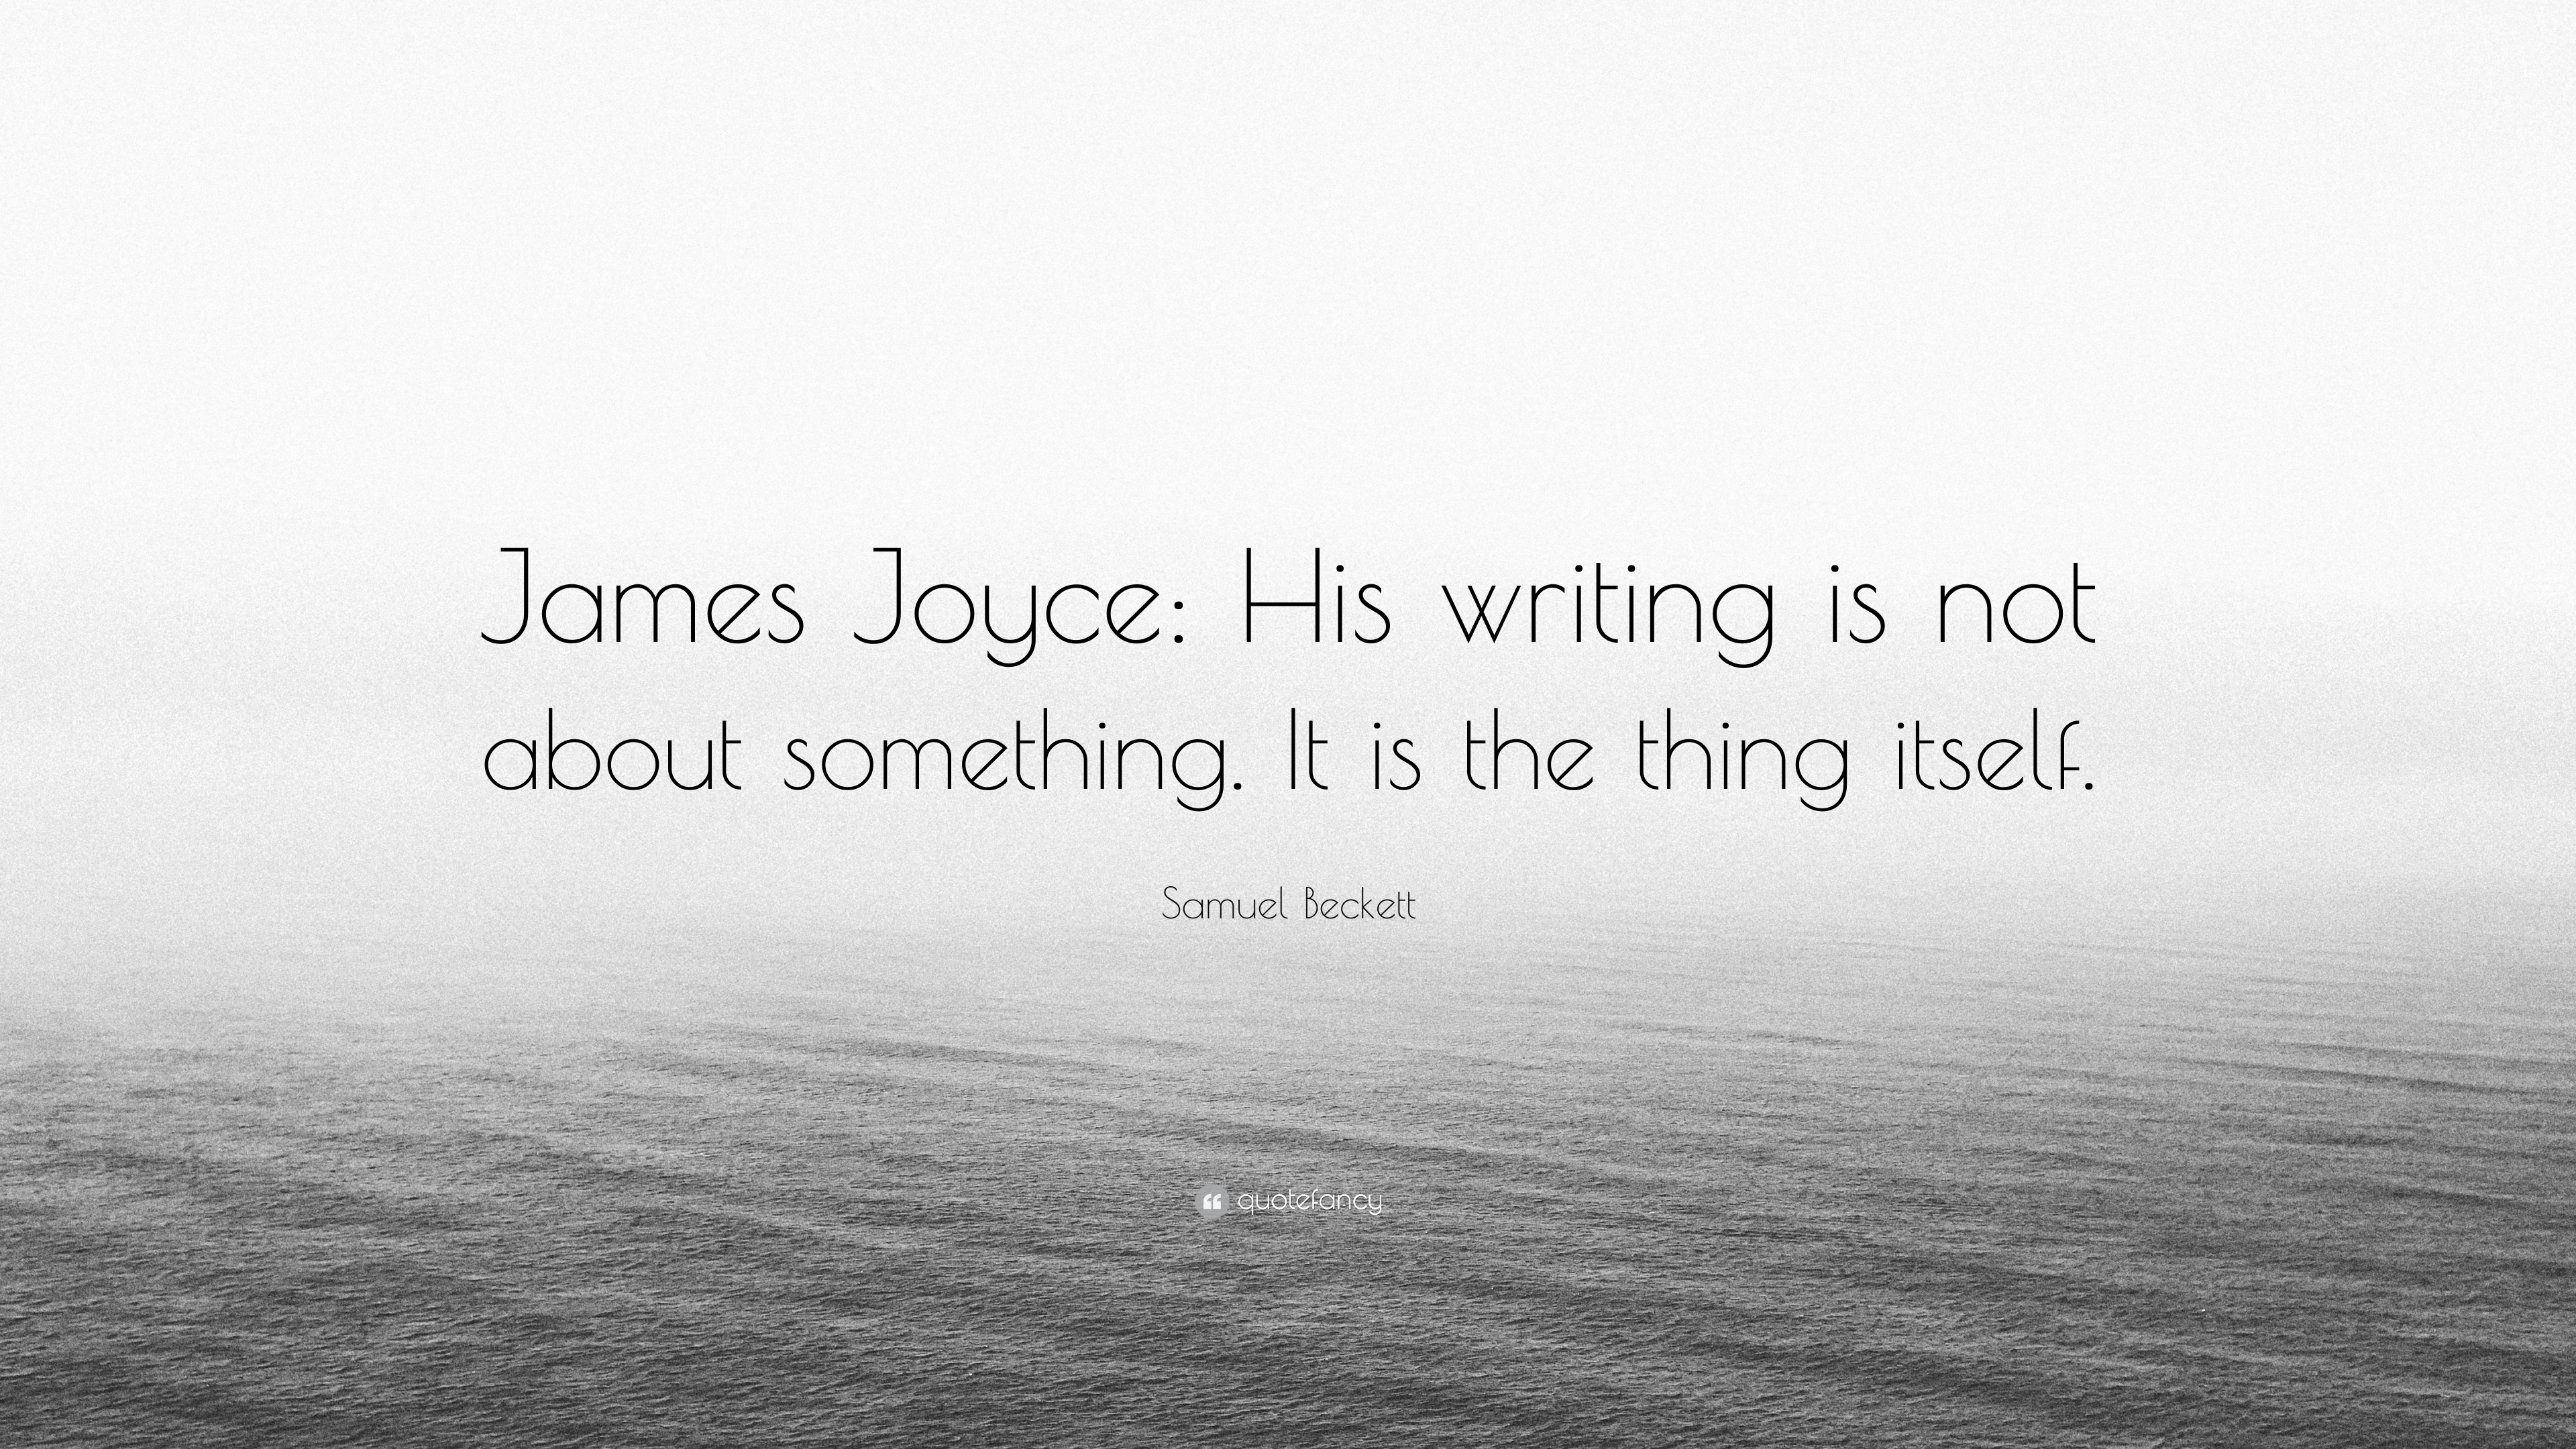 essay about james joyce and samuel beckett Samuel beckett was awarded the nobel prize for literature in 1969, and was  upset by the selection, claiming that james joyce should have.